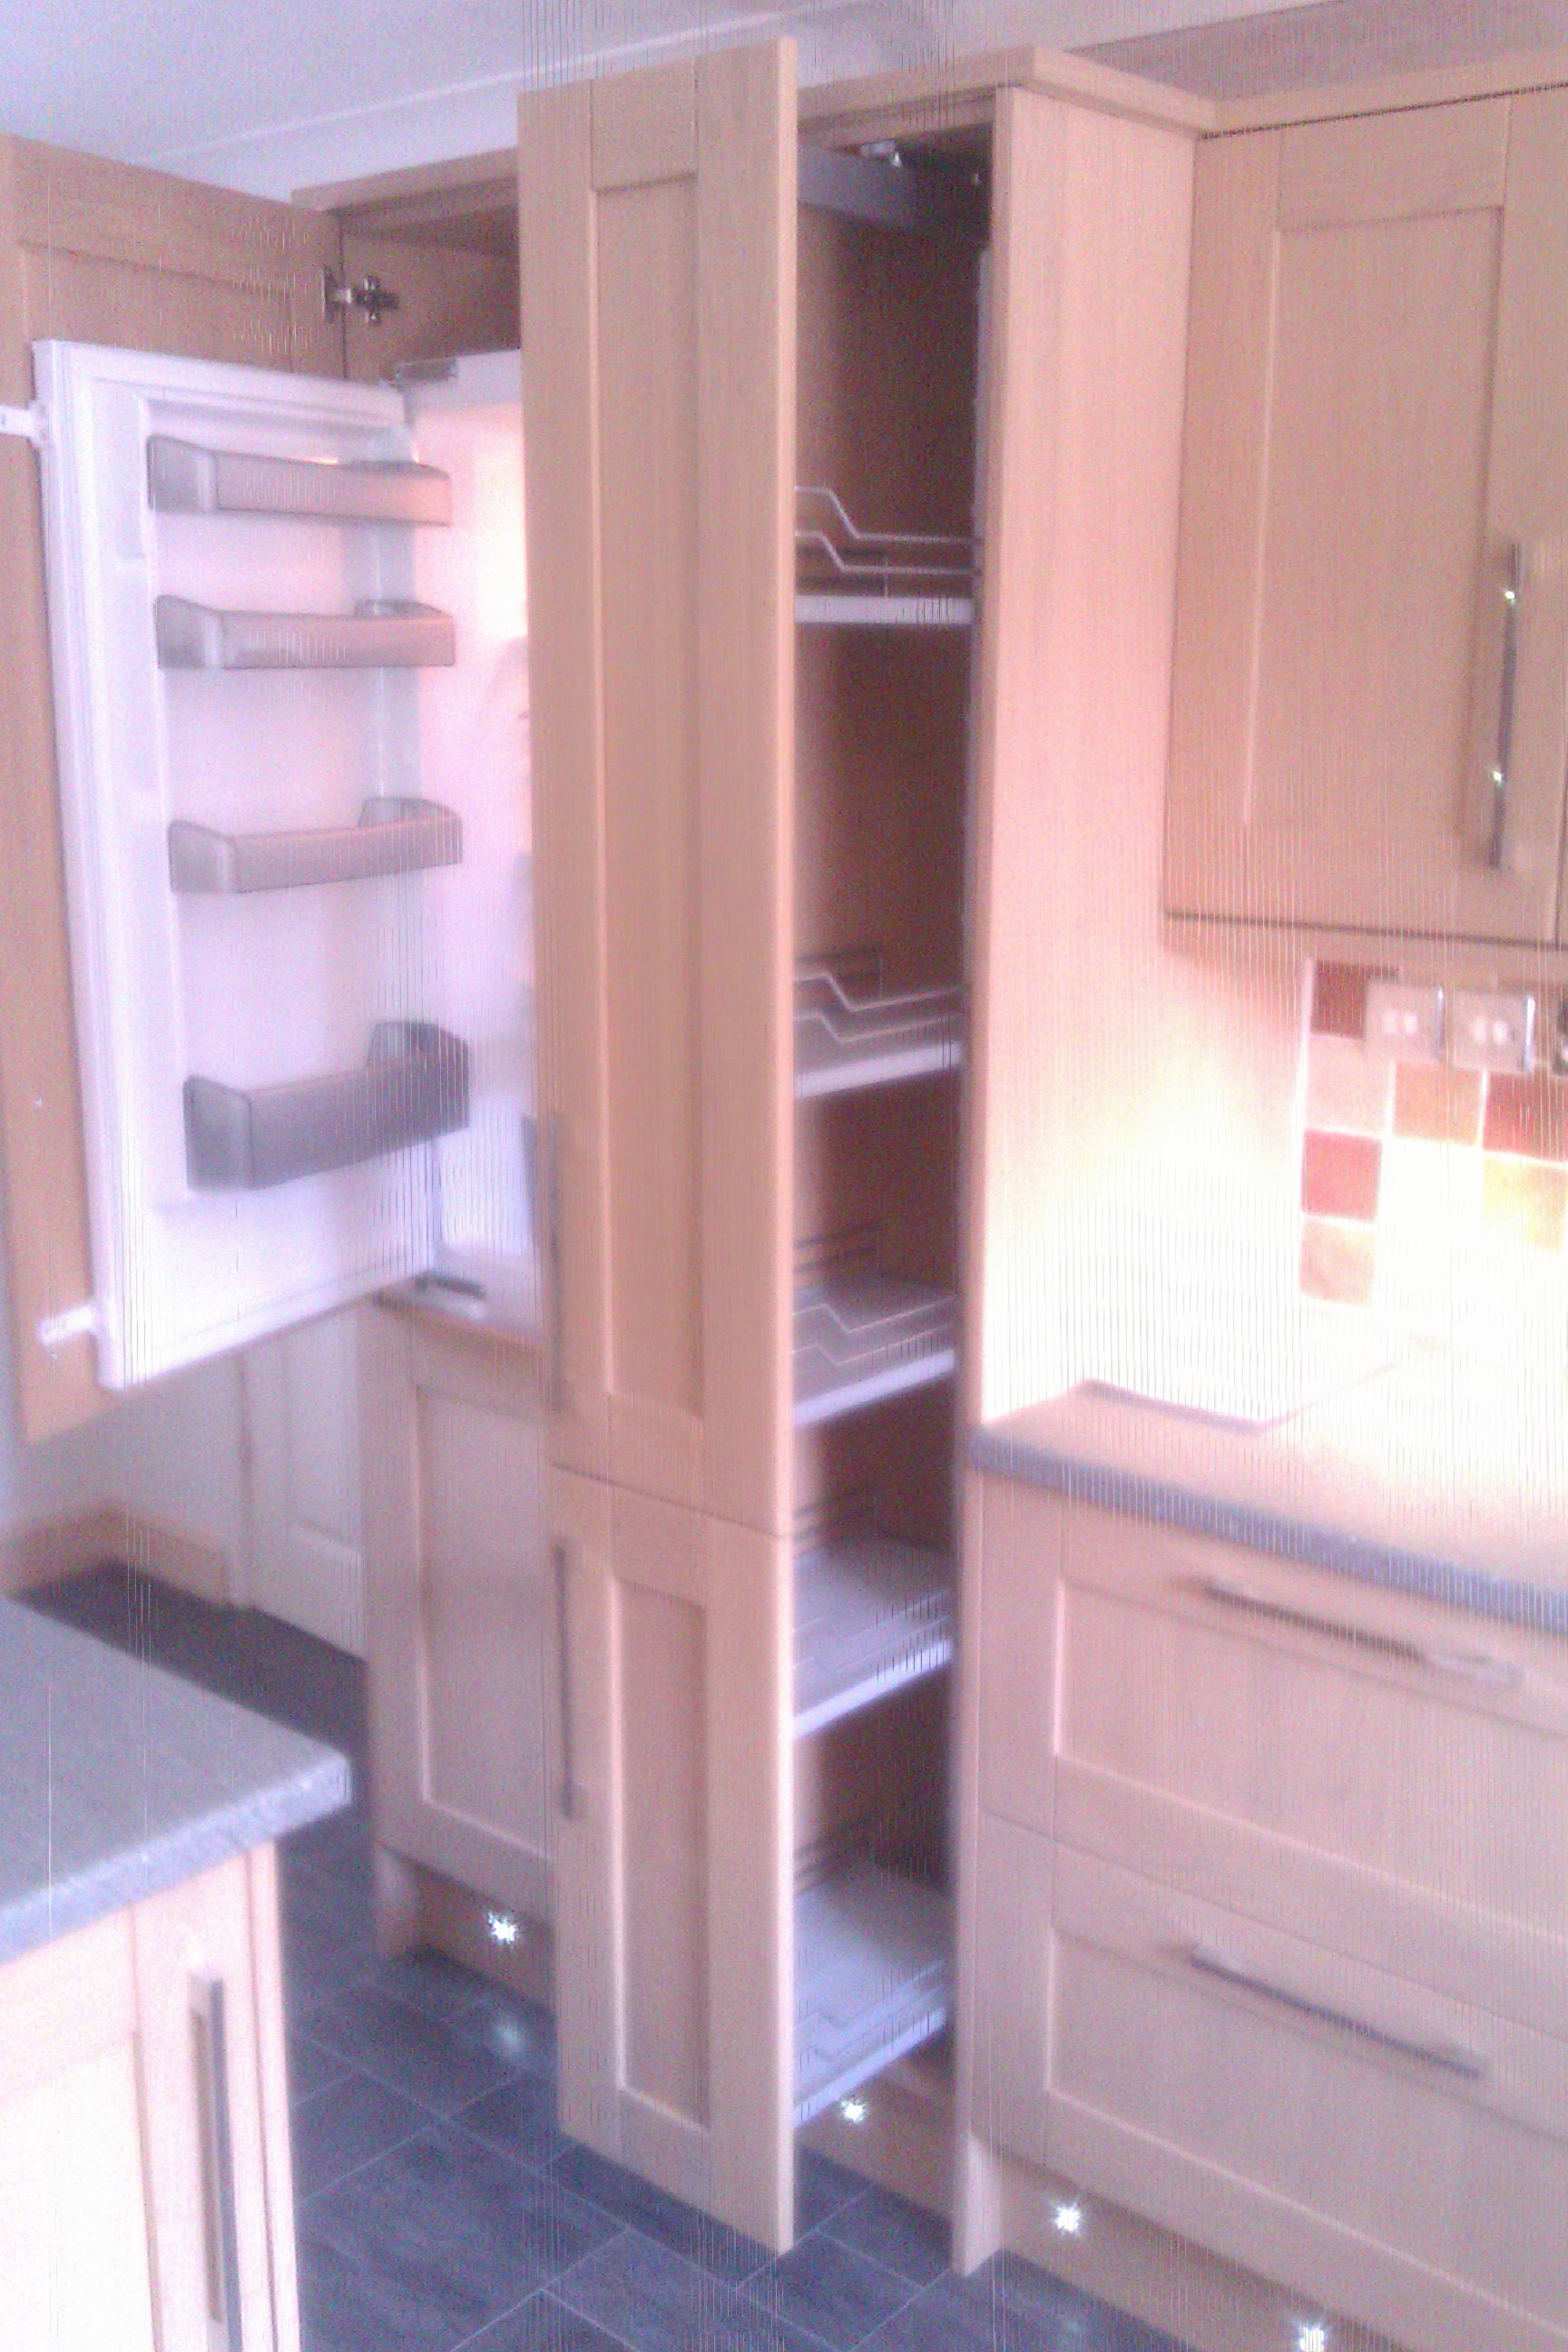 Howdens intergrated fridge freezer and pull out larder for Howdens kitchen units sizes